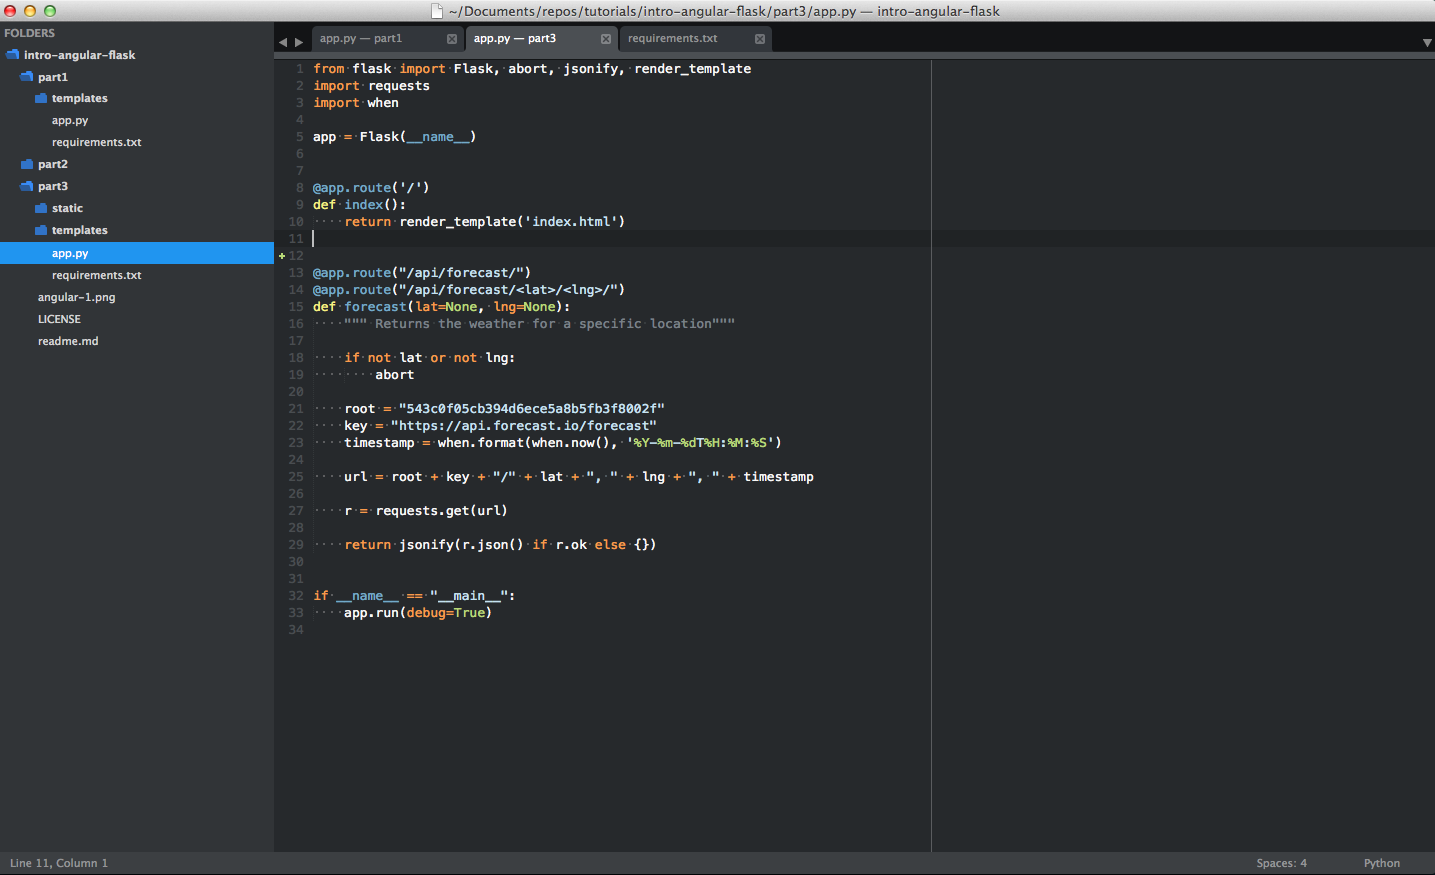 This article details how to set up Sublime Text for full